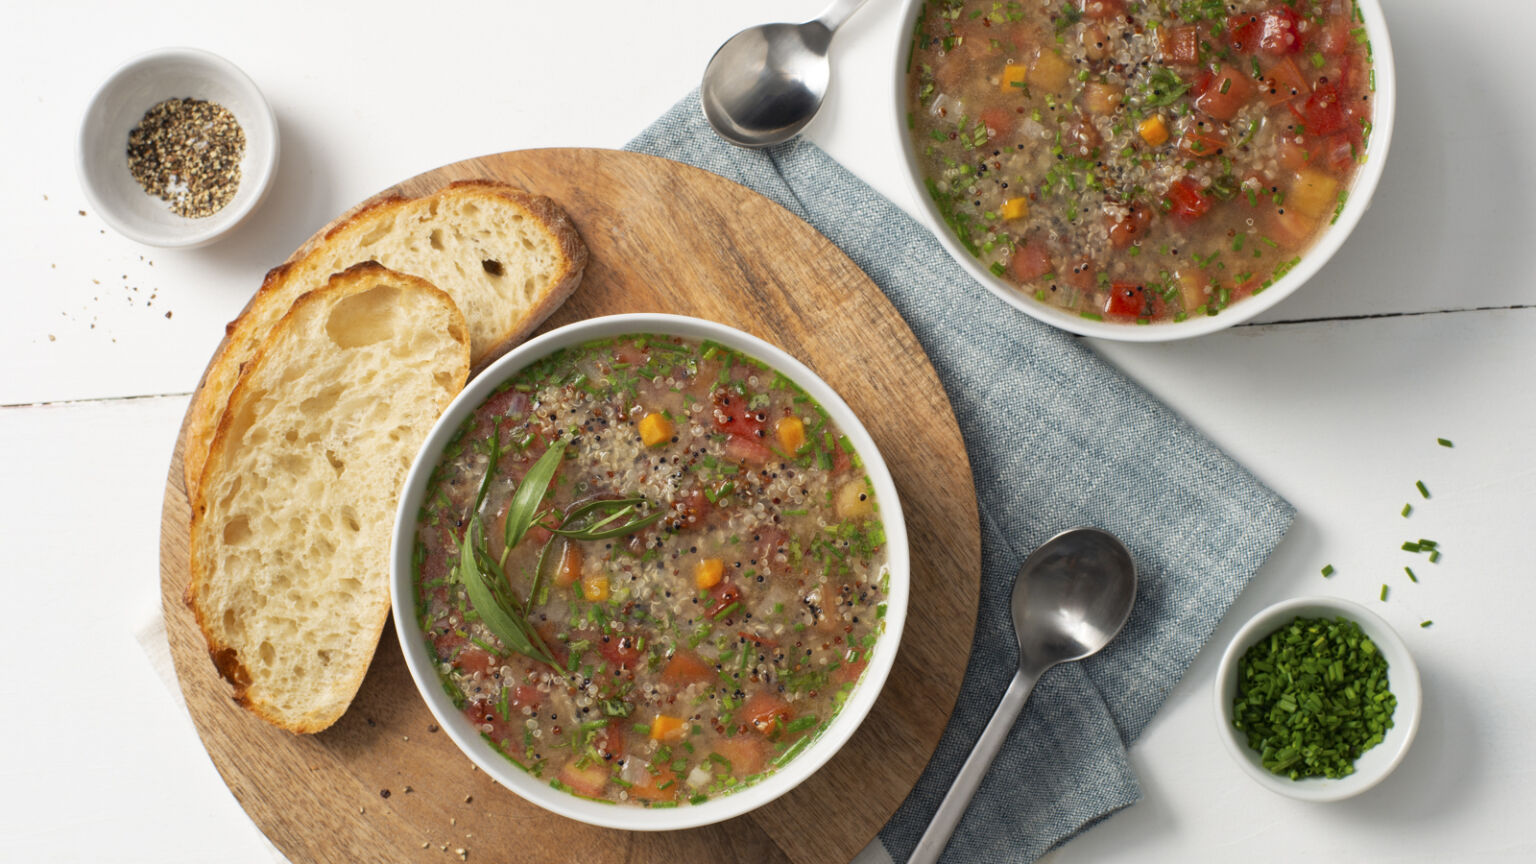 French Herb Tomato Soup with Quinoa